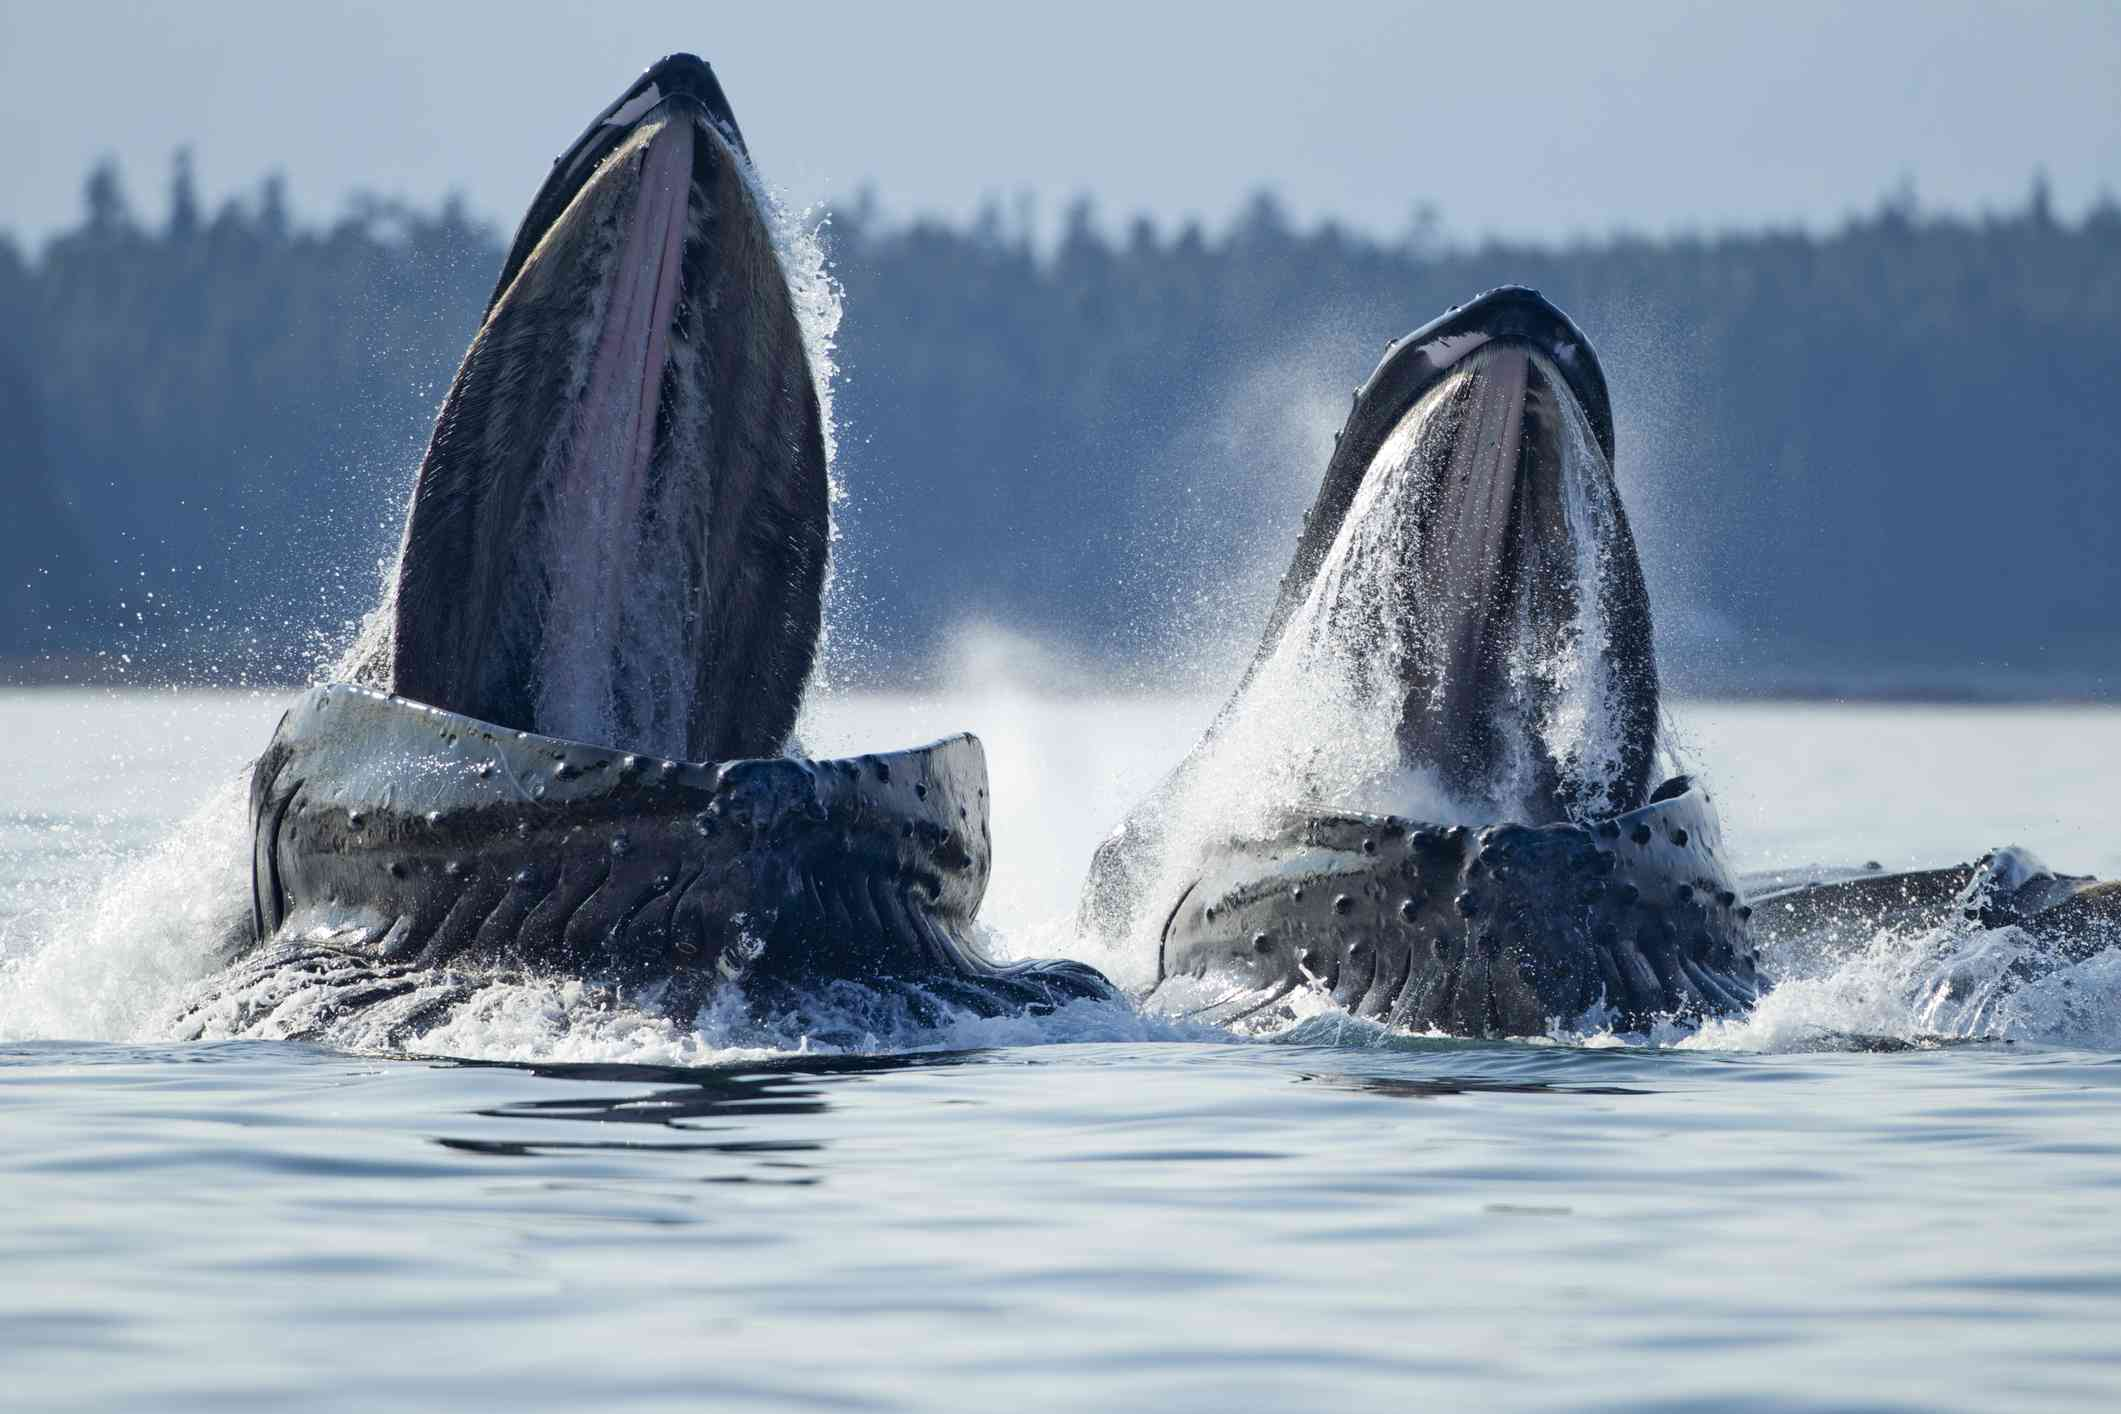 Two humpback whales breach the surface of the water with open mouths